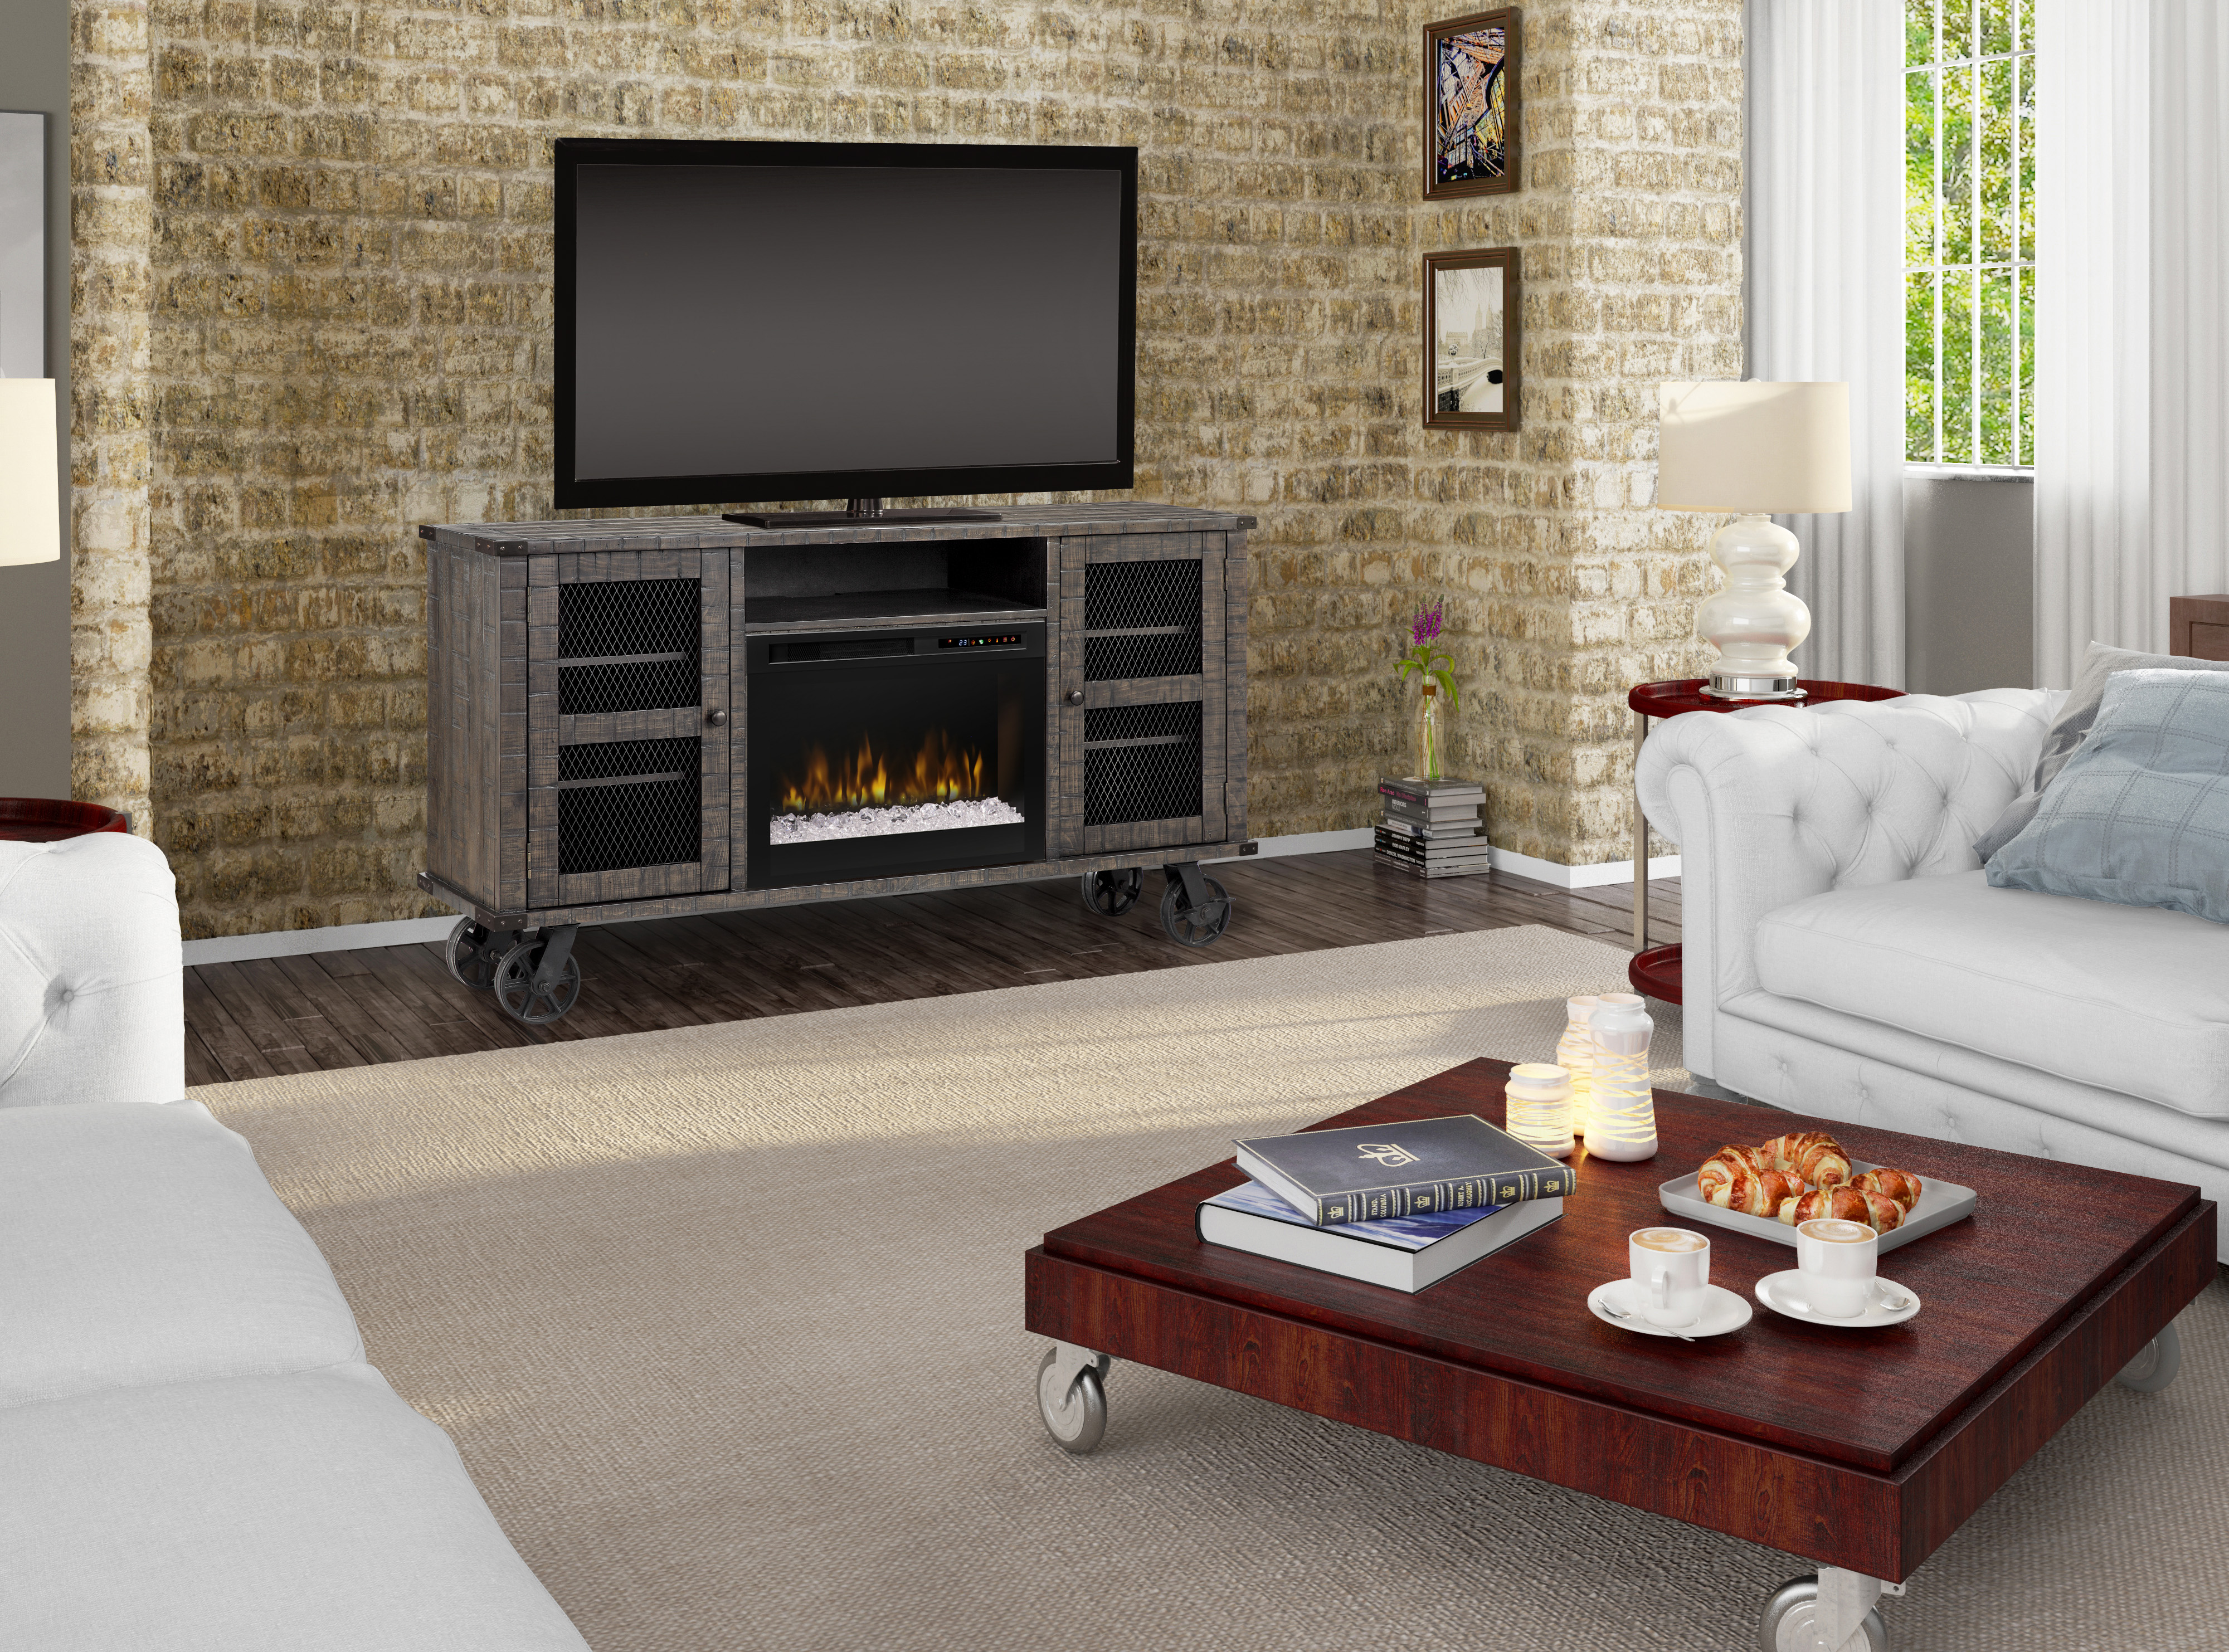 Dimplex Electric Fireplace – Duncan Media Console